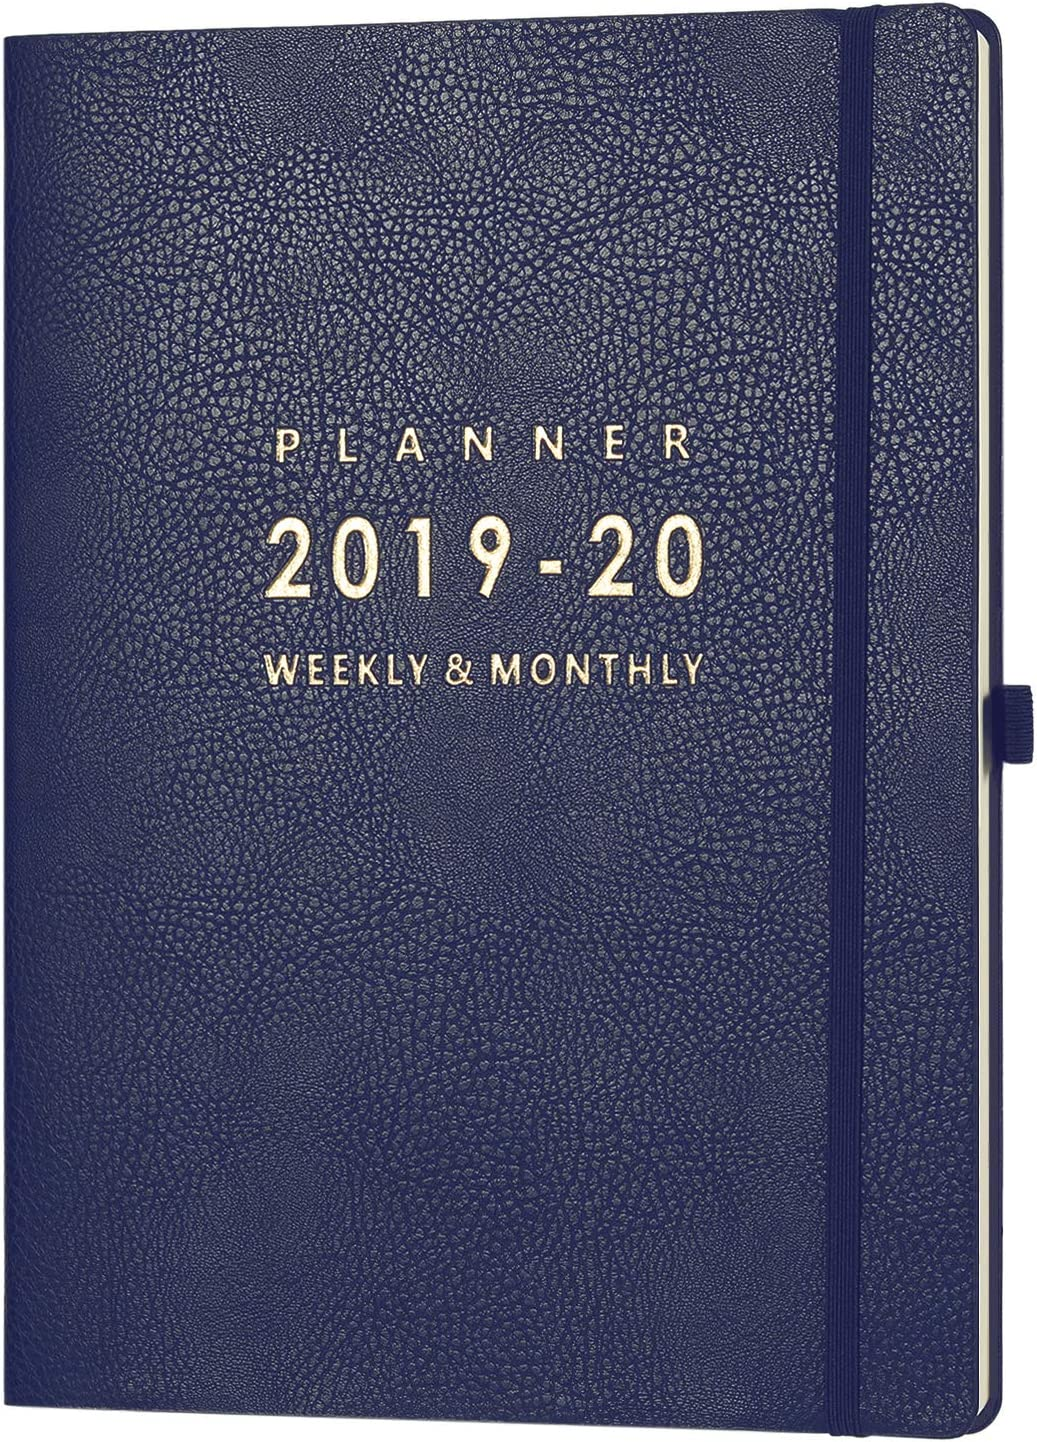 "2019-2020 Planner with Pen Holder - Weekly & Monthly Planner with Calendar Stickers, July 2019 - June 2020, Inner Pocket with 24 Notes Pages, A4 Premium Thicker Paper, 8.5"" x 11"""